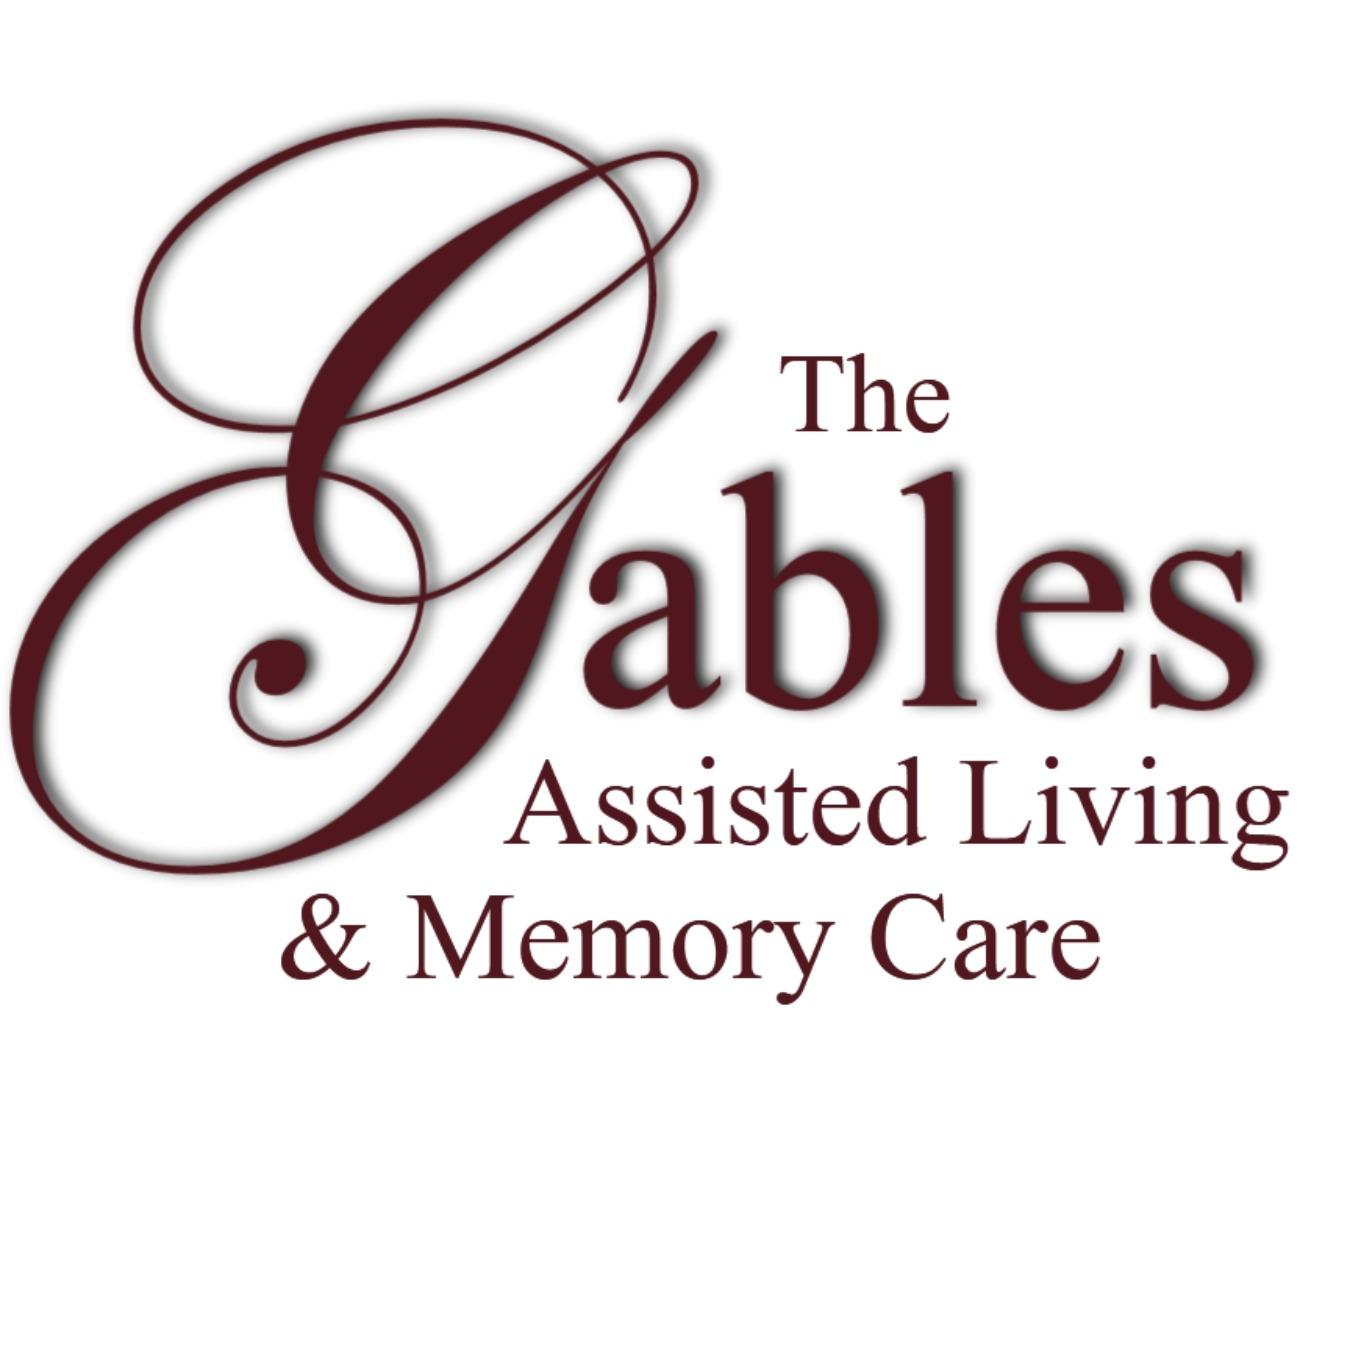 The Gables of Pocatello II Assisted Living & Memory Care - Pocatello, ID - Retirement Communities